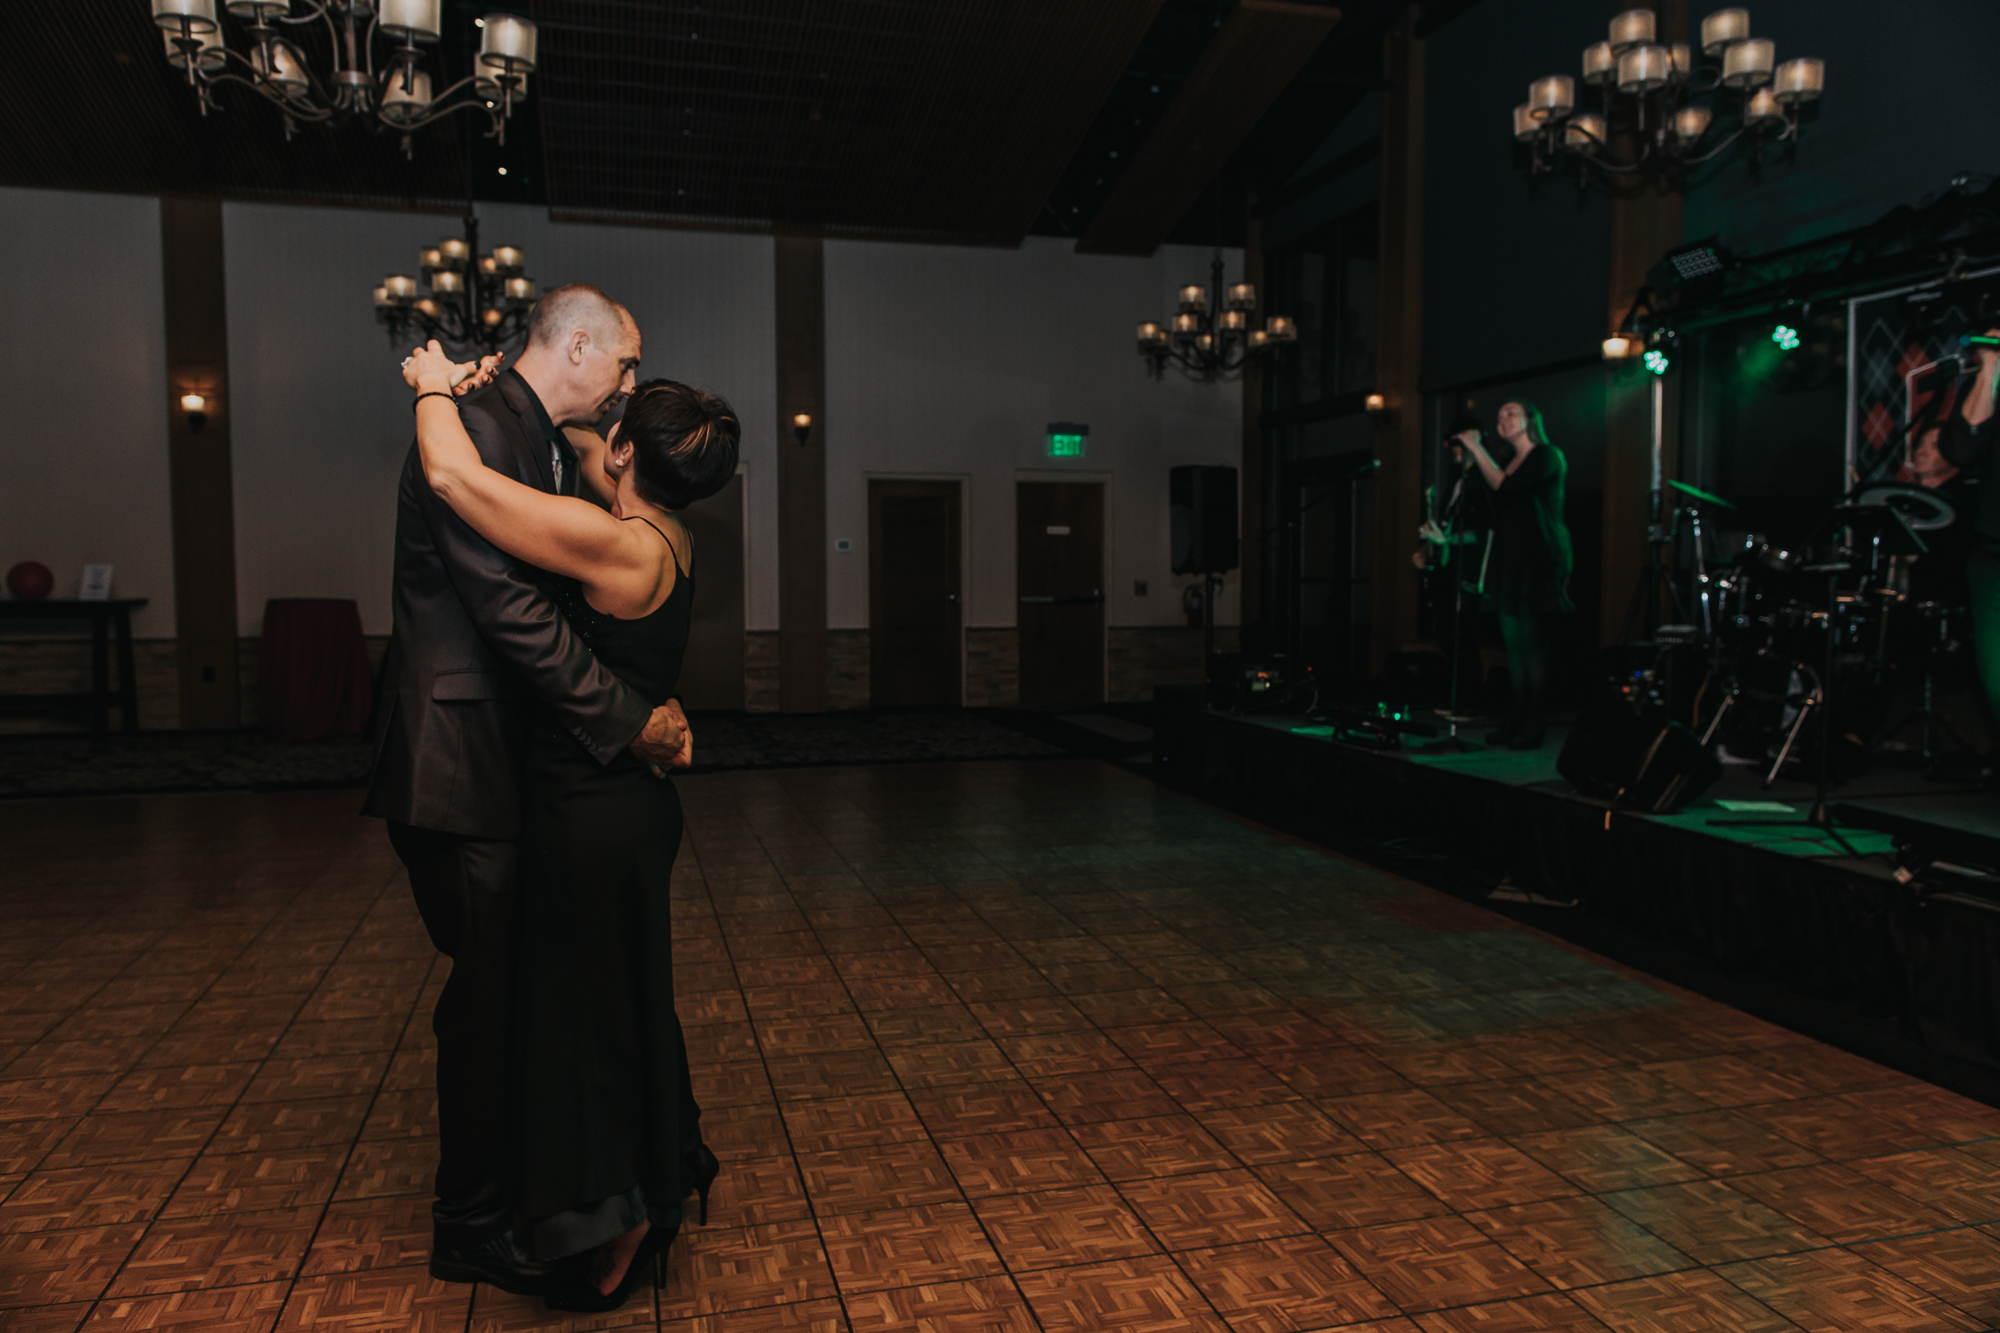 jdrf-slow-dance-reception-photography-lehigh-valley-pconos